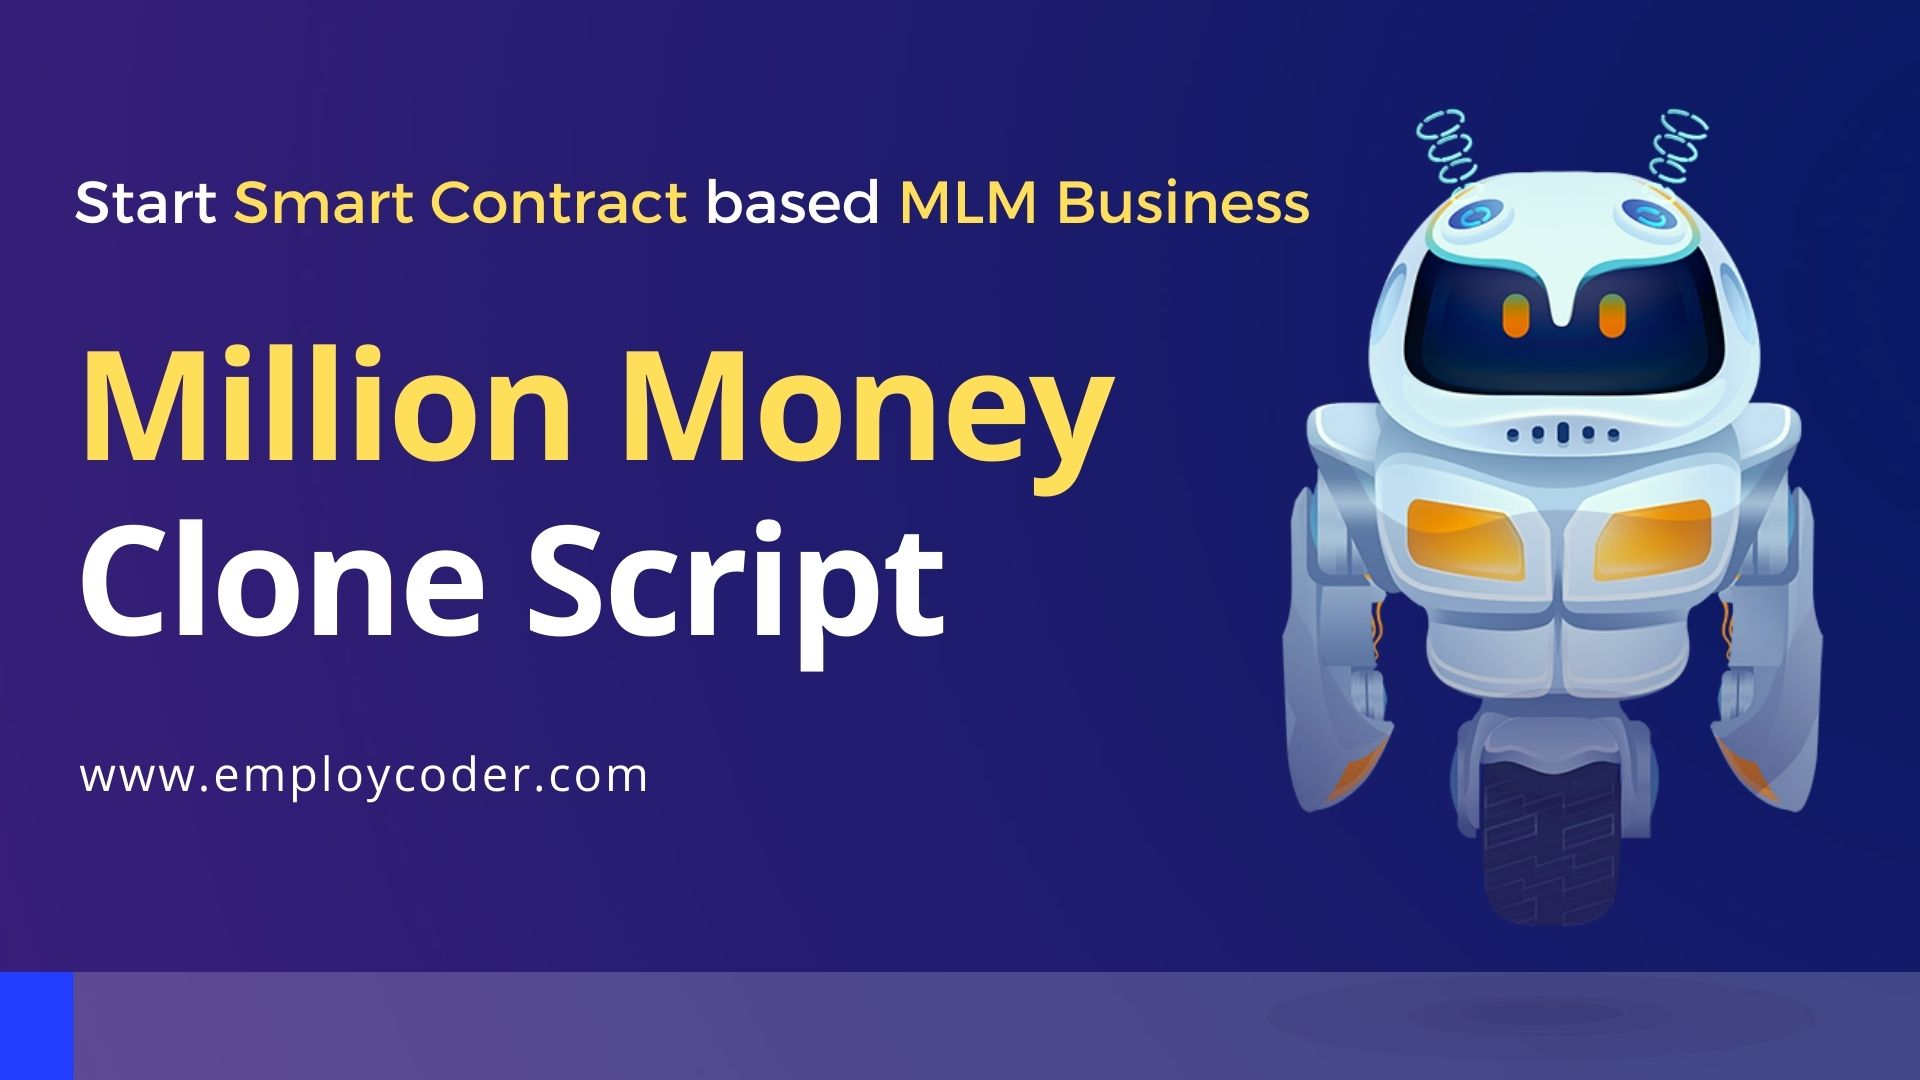 A Complete Guide To Build a Fully Decentralized Smart Contract MLM Like Million Money